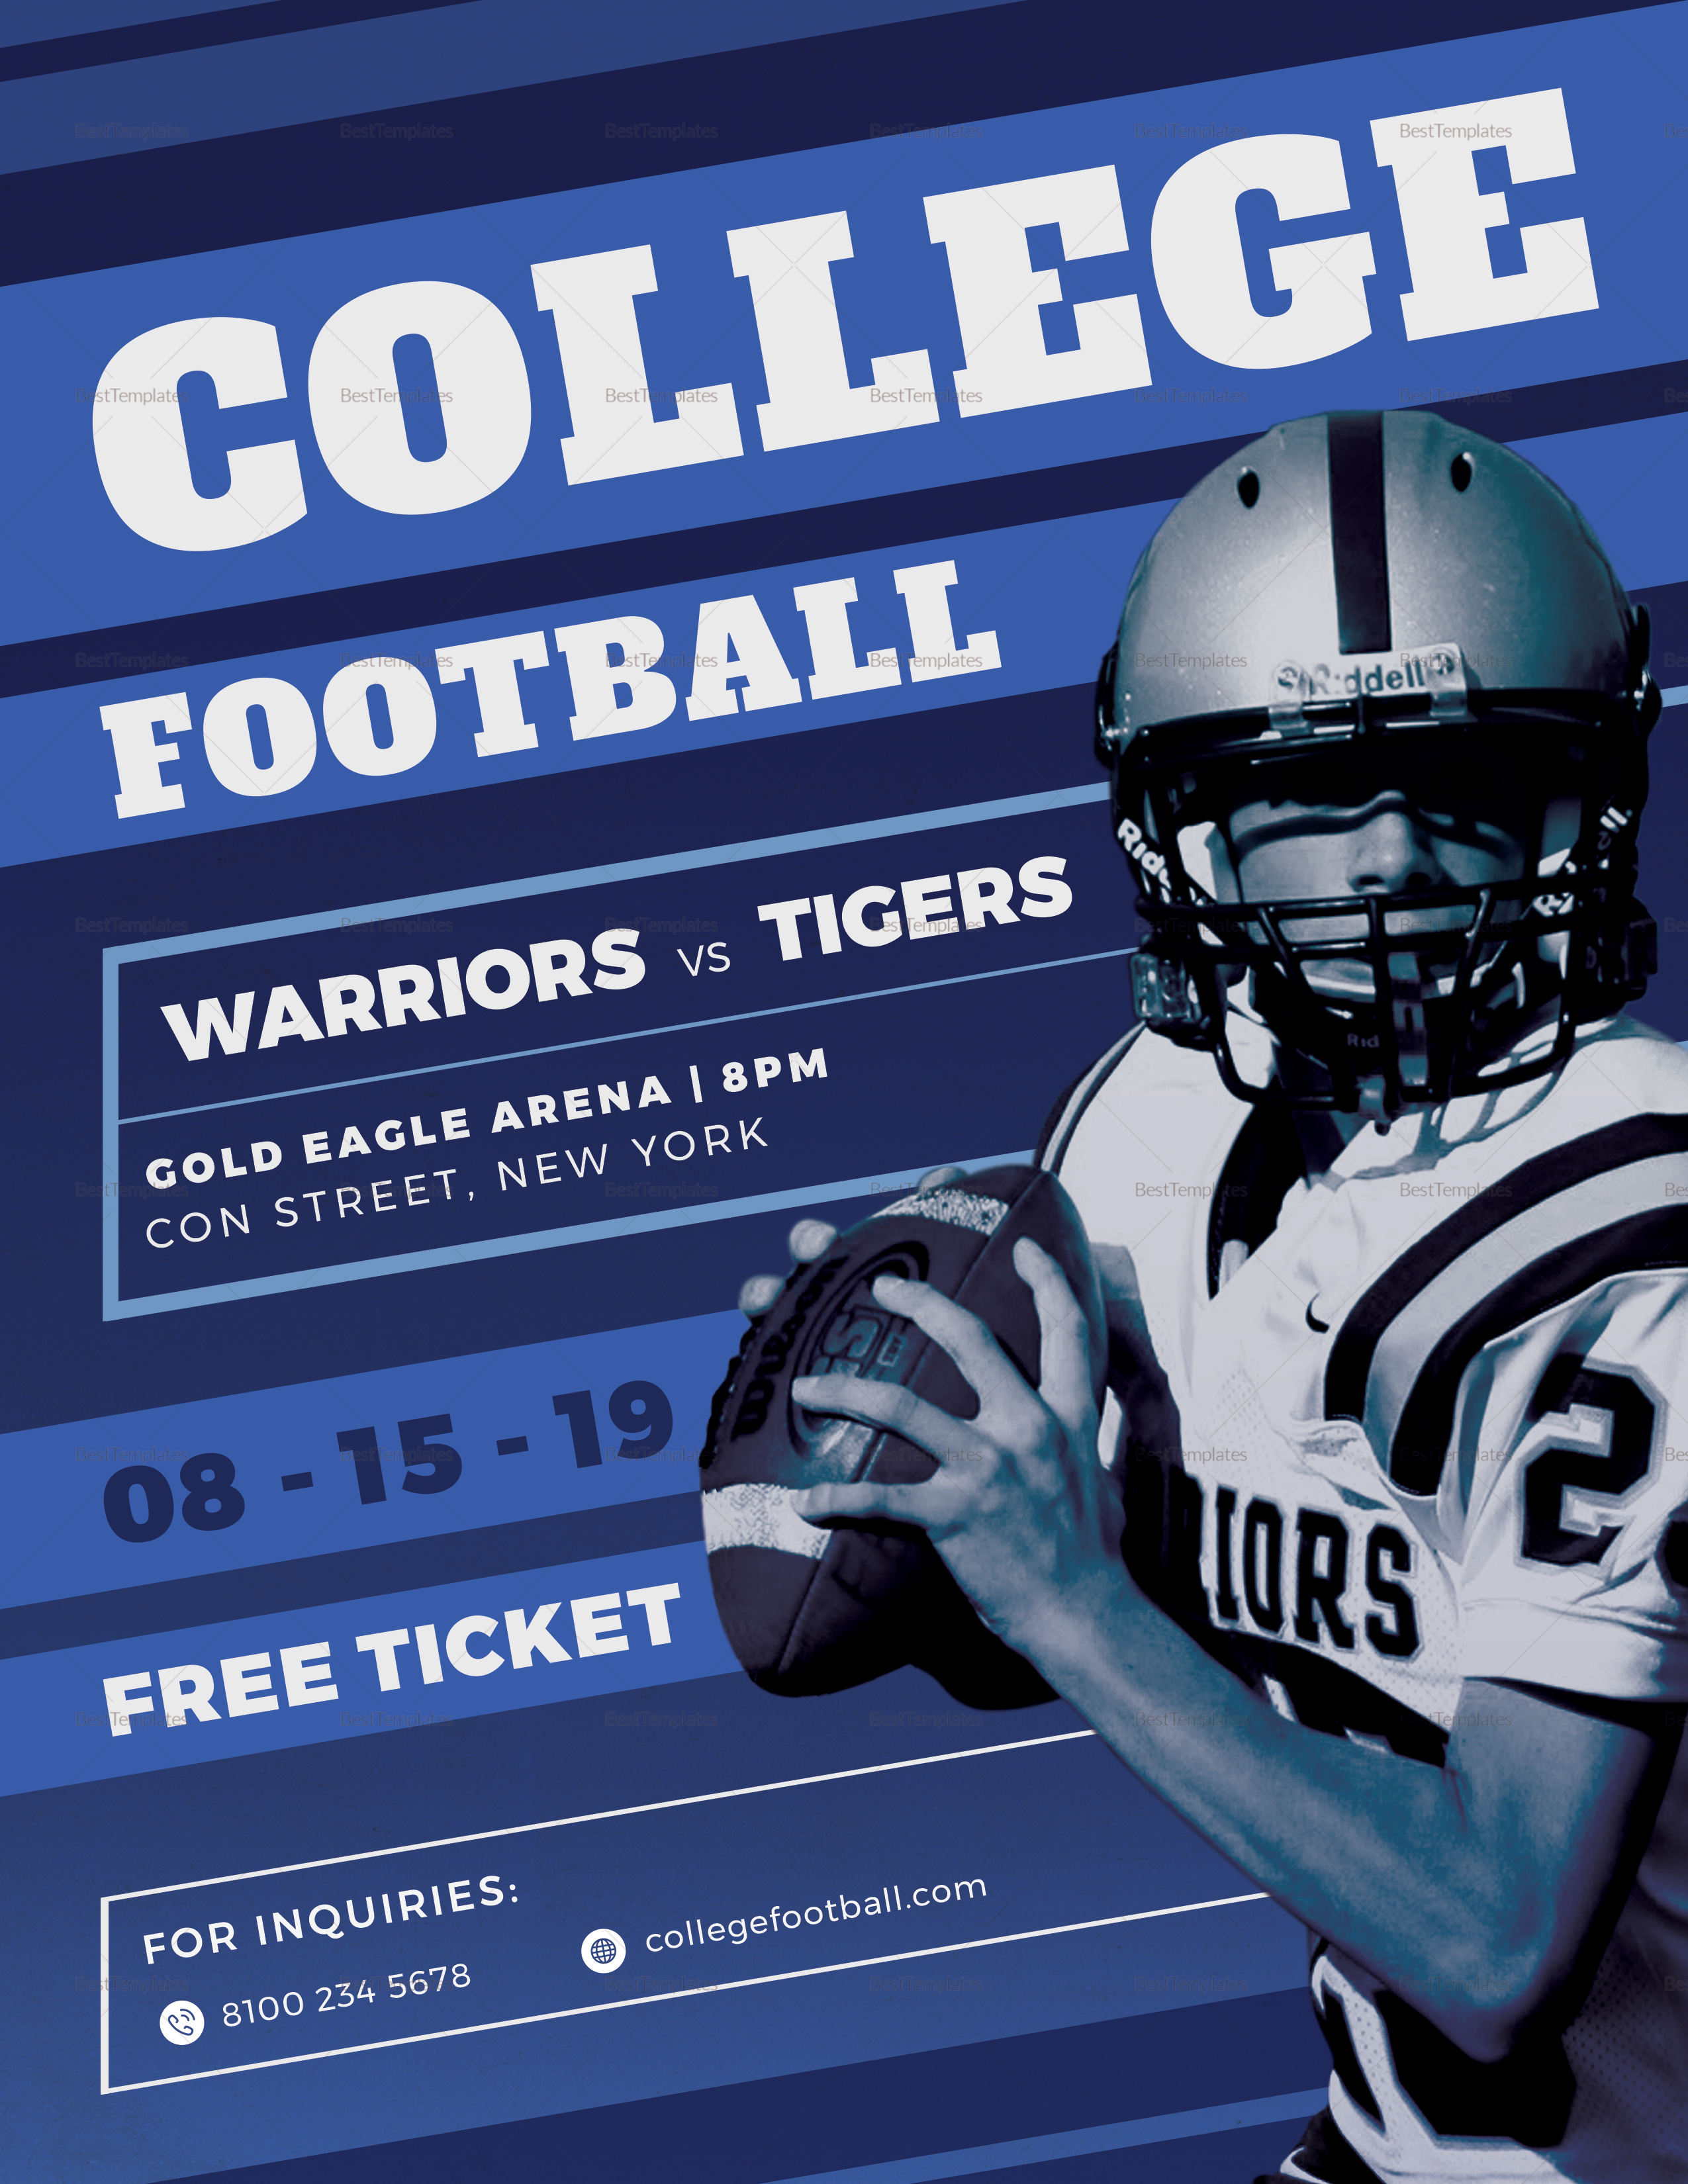 College Football Flyer Design Template In Psd Word Publisher